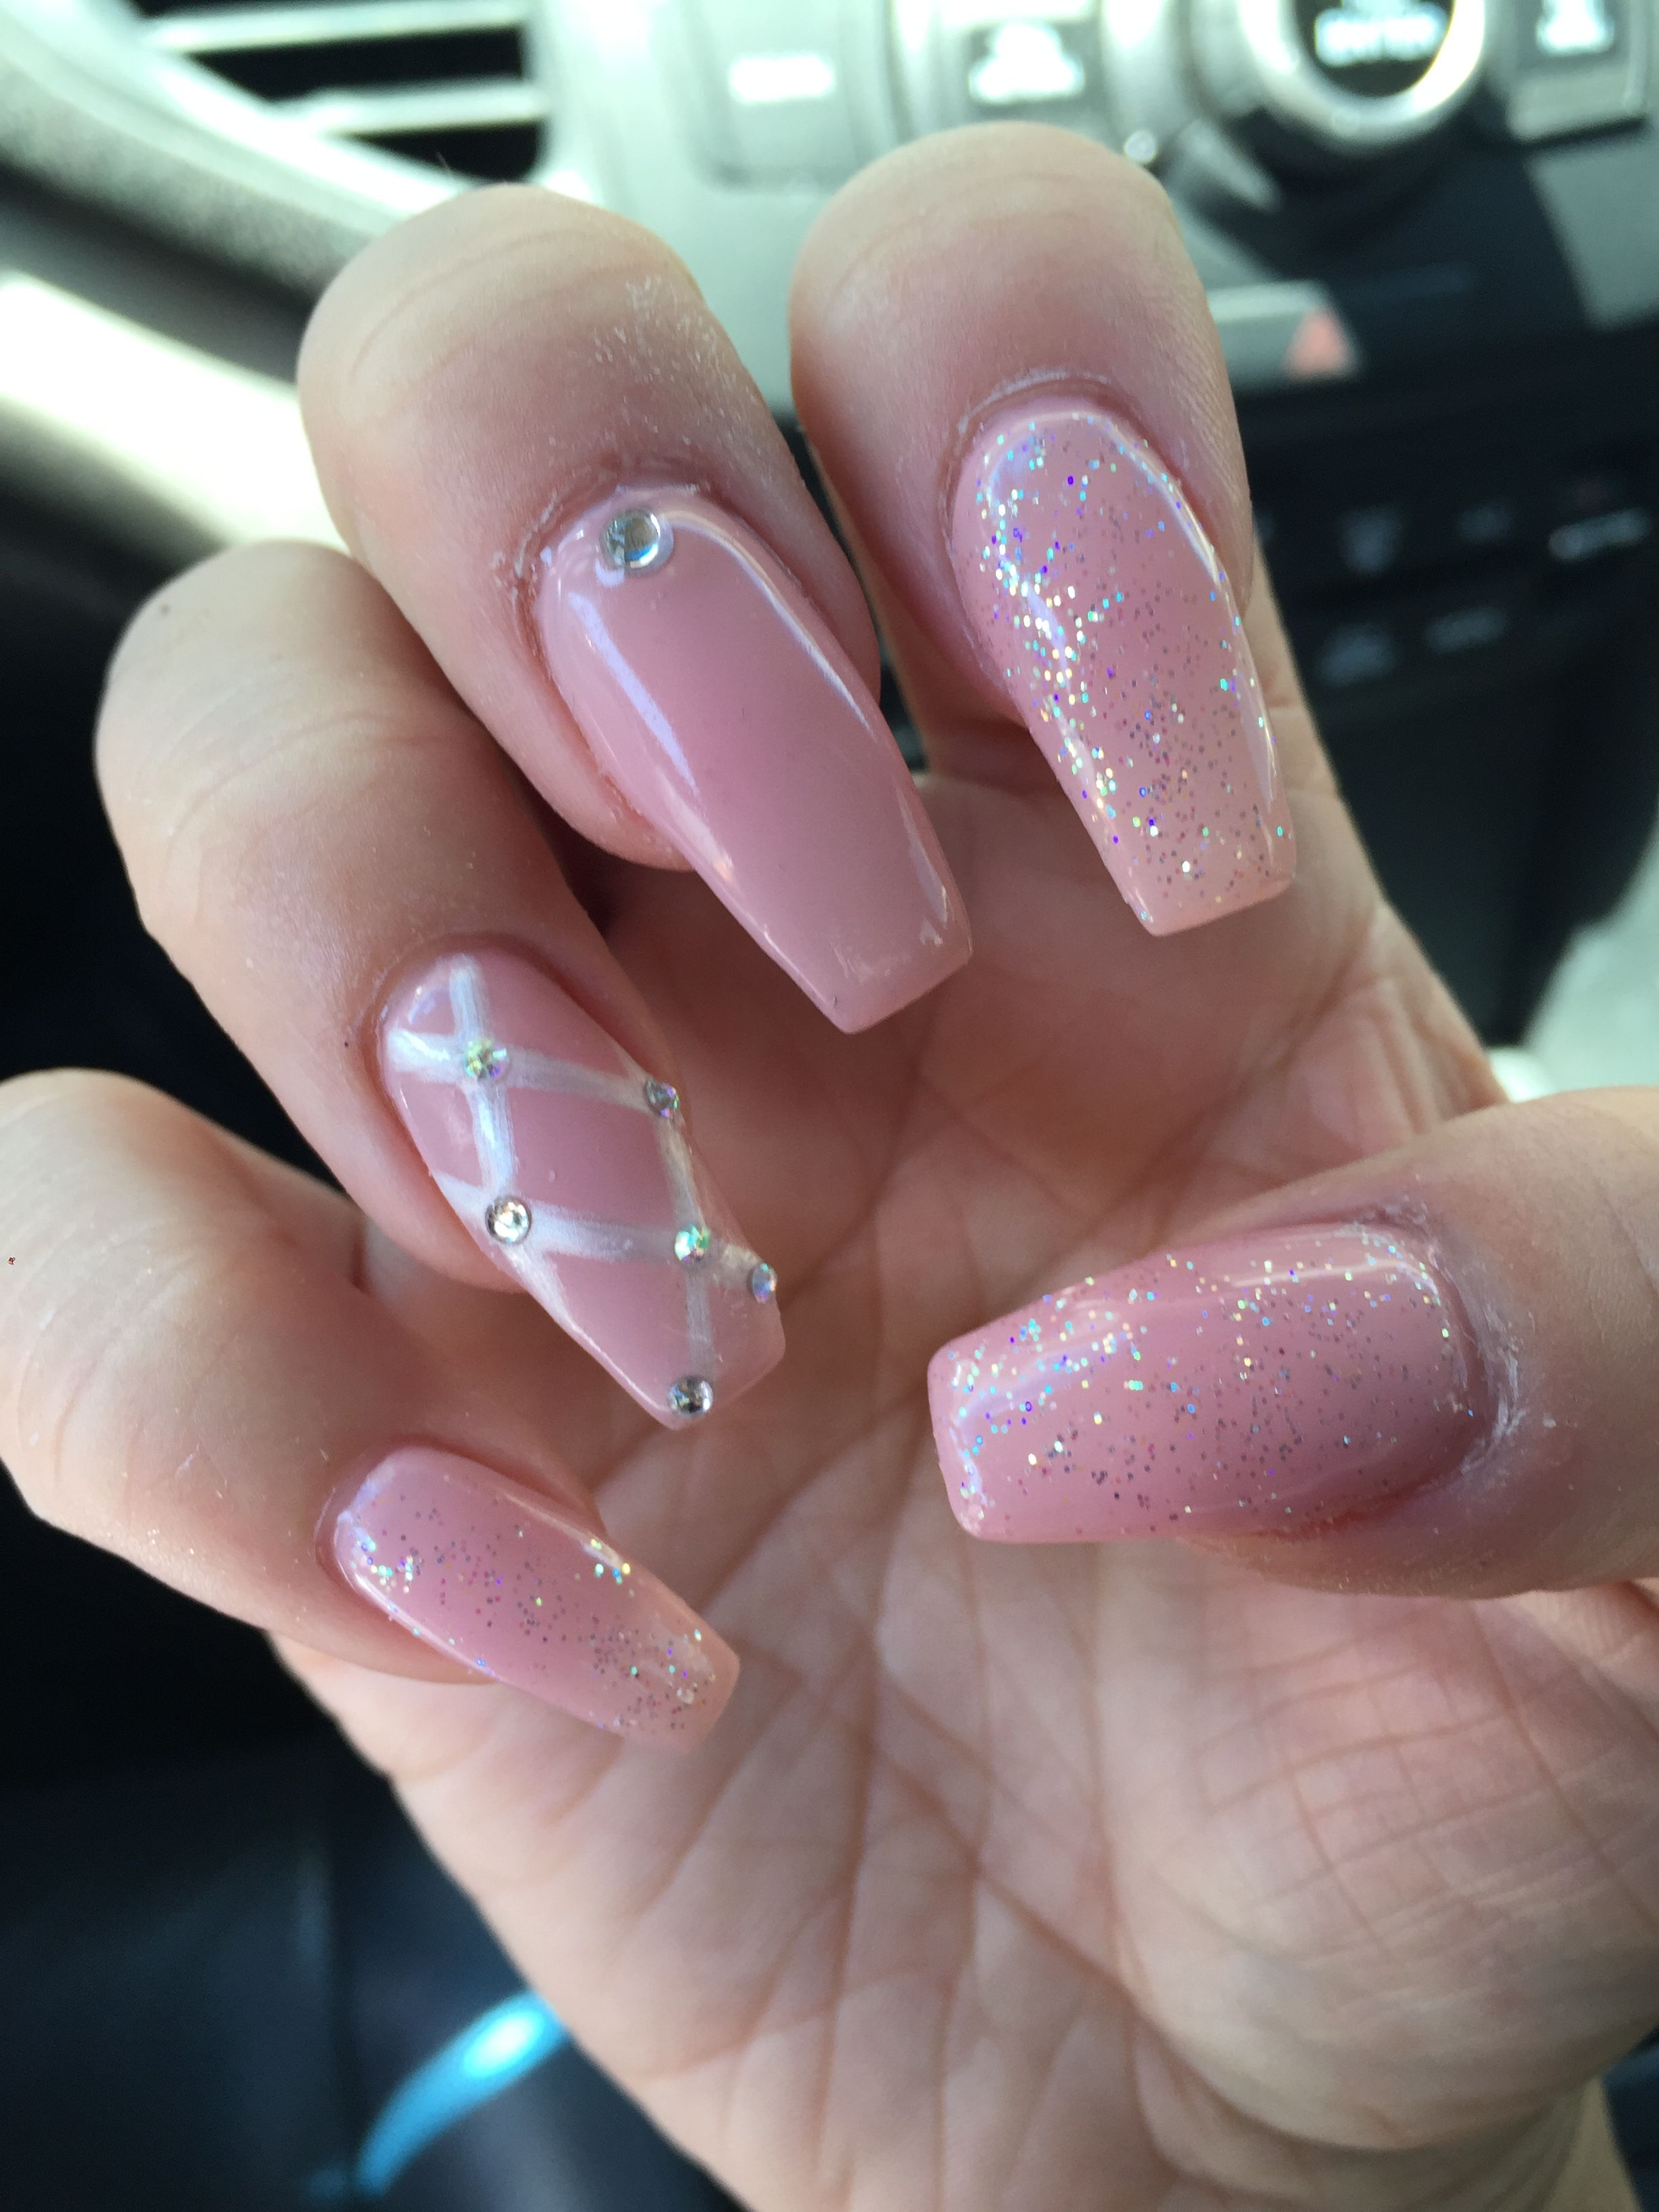 Pin by K Mats on Nails | Pinterest | Coffin nails